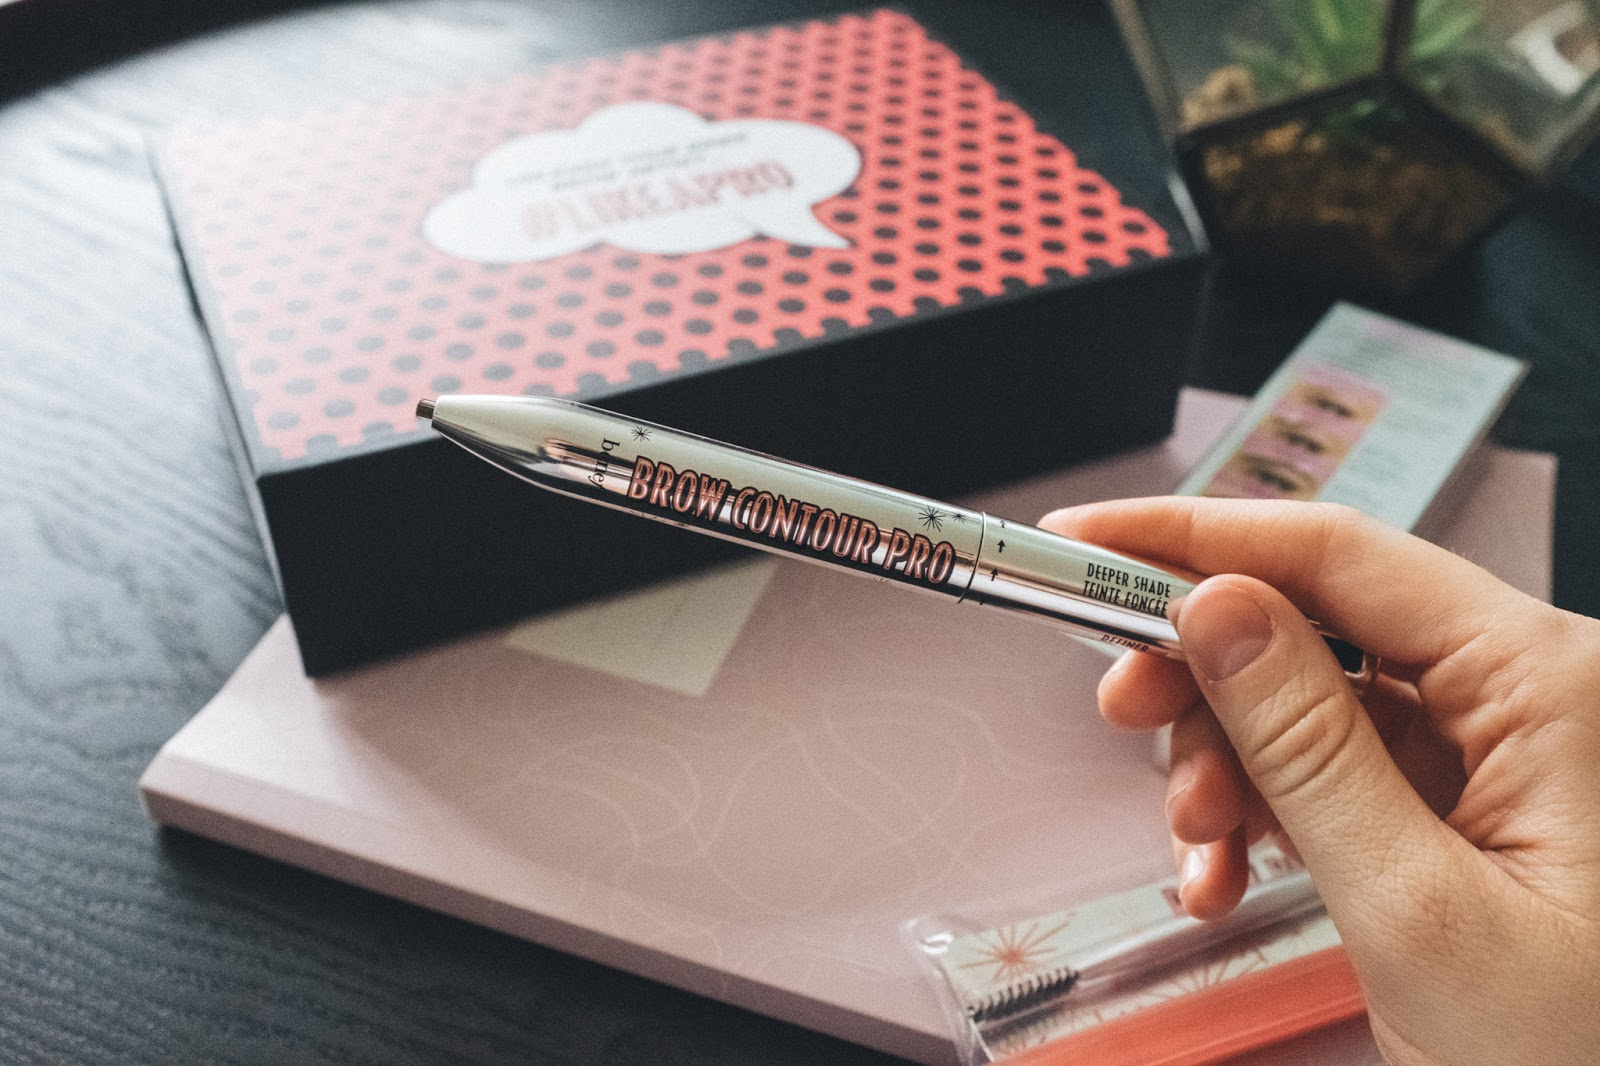 Benefit Brow Contour Pro review